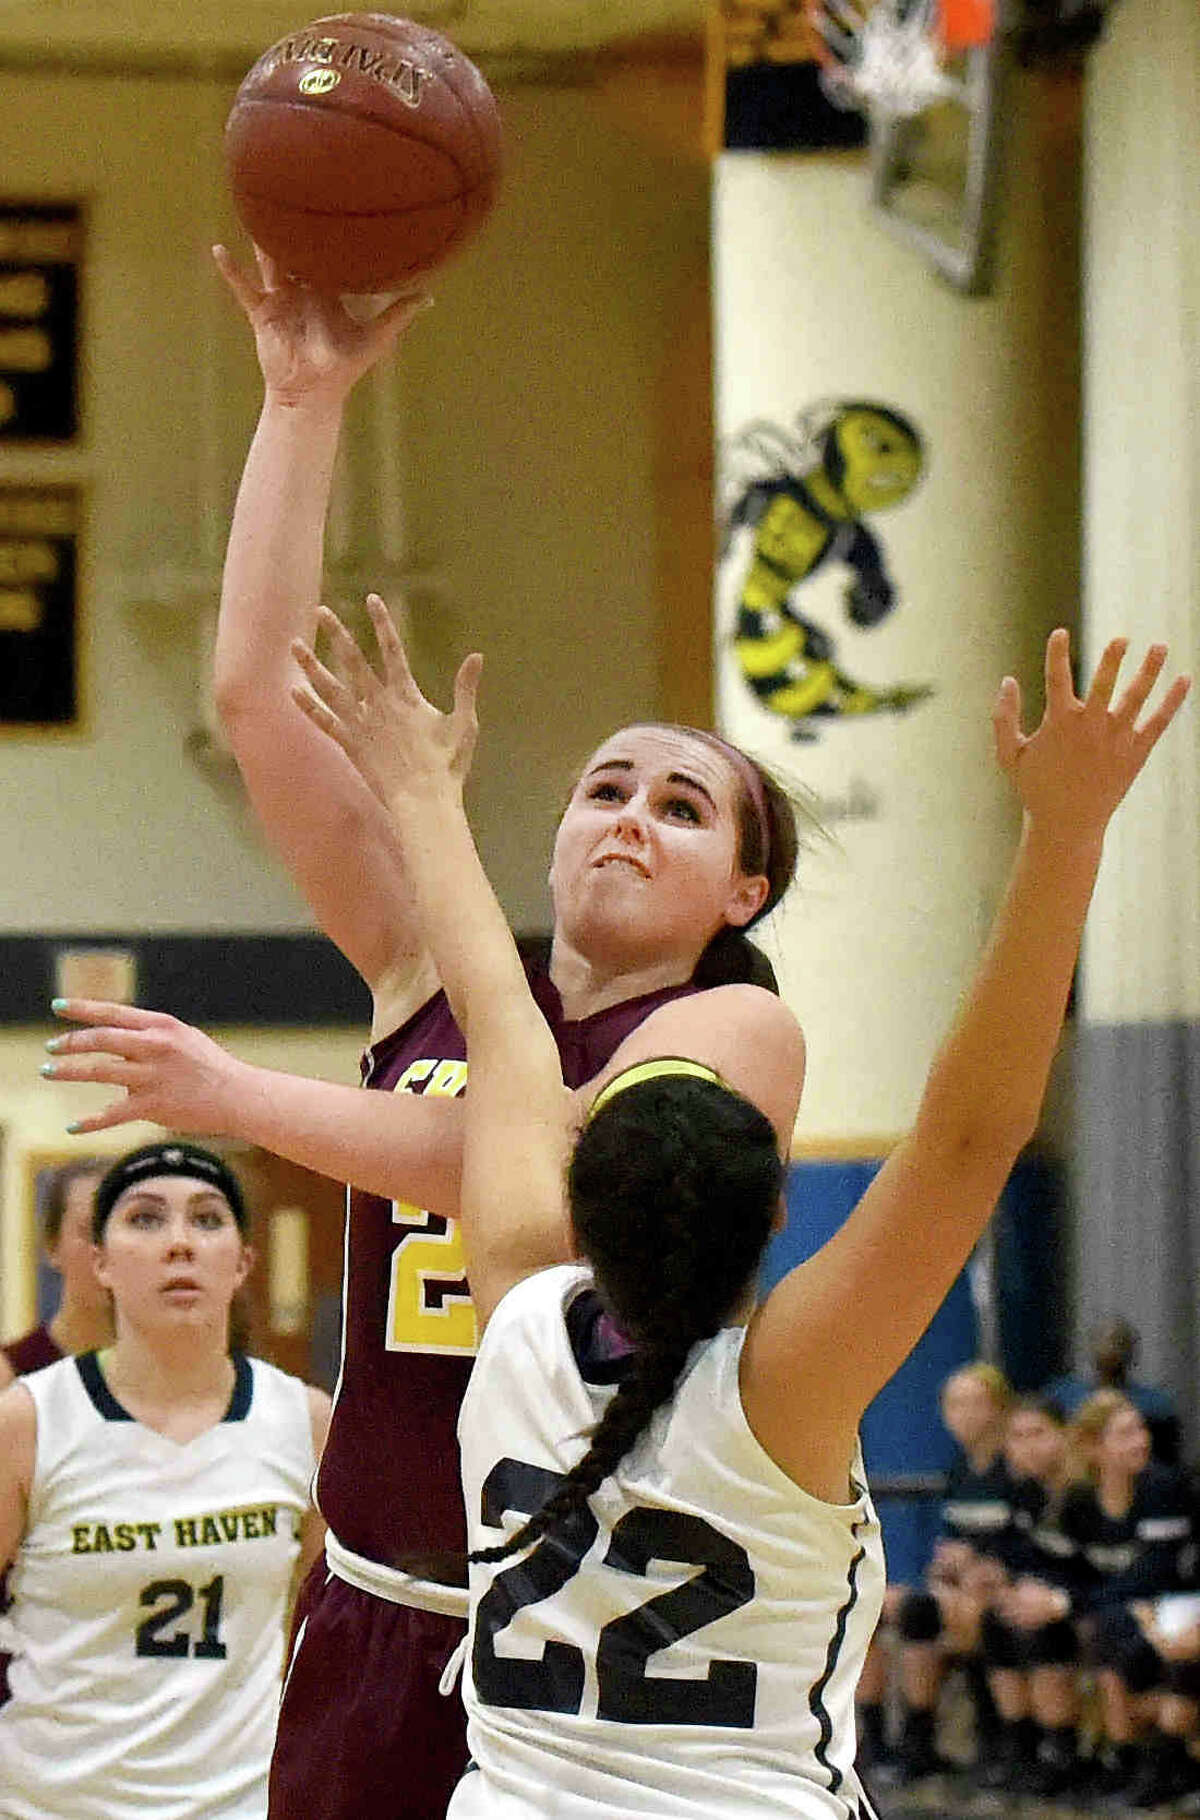 (Photo by Peter Hvizdak - New Haven Register) Kaitlin Lagasie of Sheehan H.S. takes a shot over Dana Ross of East Haven H.S. during fourth quarter girls basketball action at East Haven H.S. Wednesday, December 10, 2014.